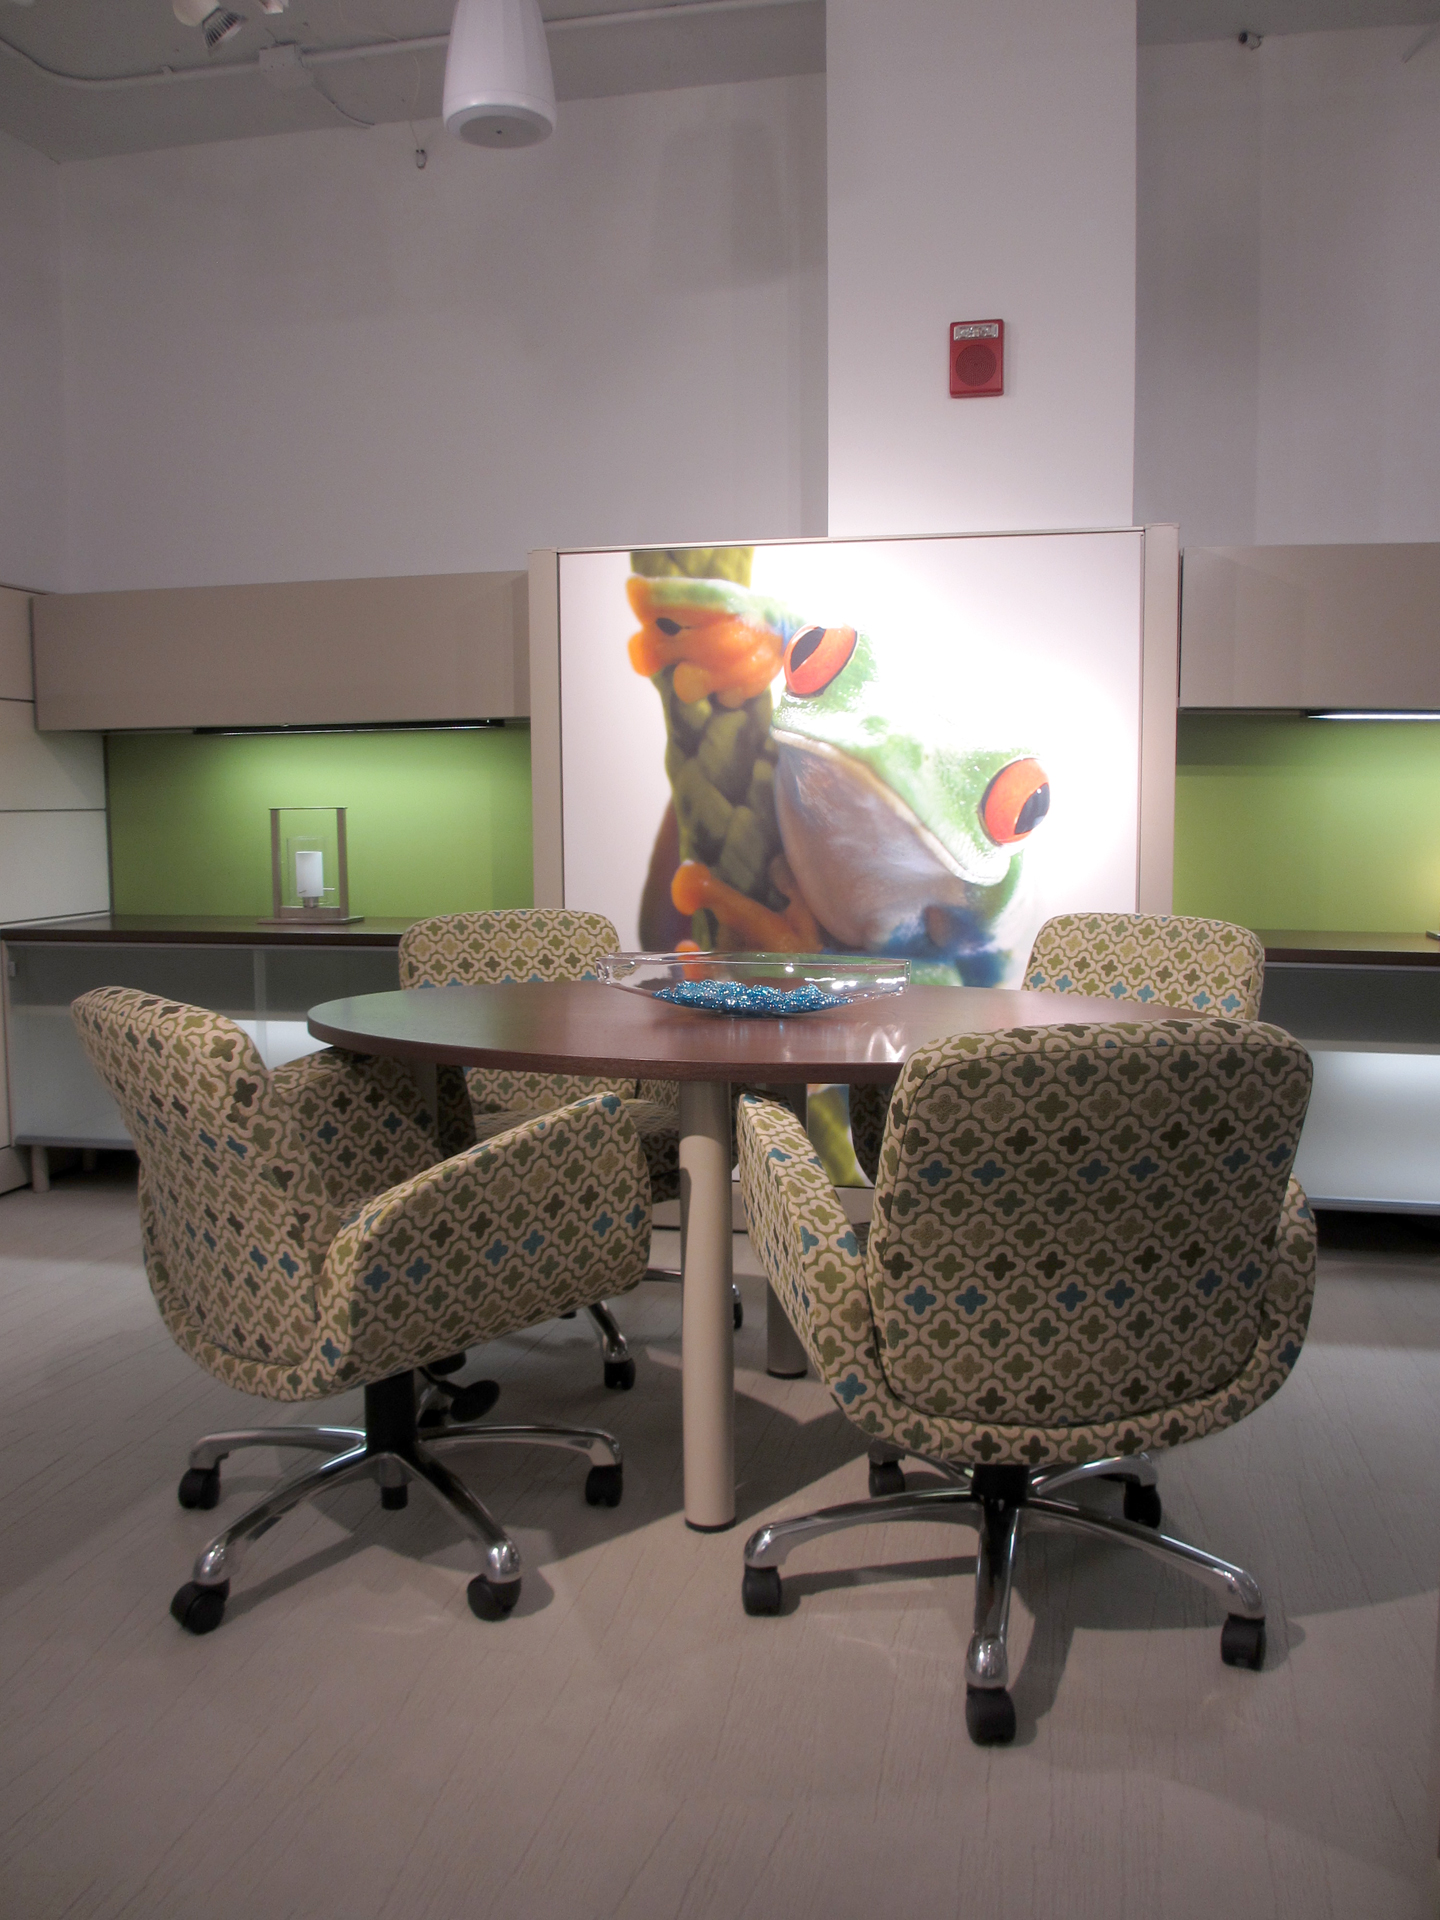 EVOLVE FURNITURE GROUP FURNITURE FOR A SUSTAINABLE WORLD